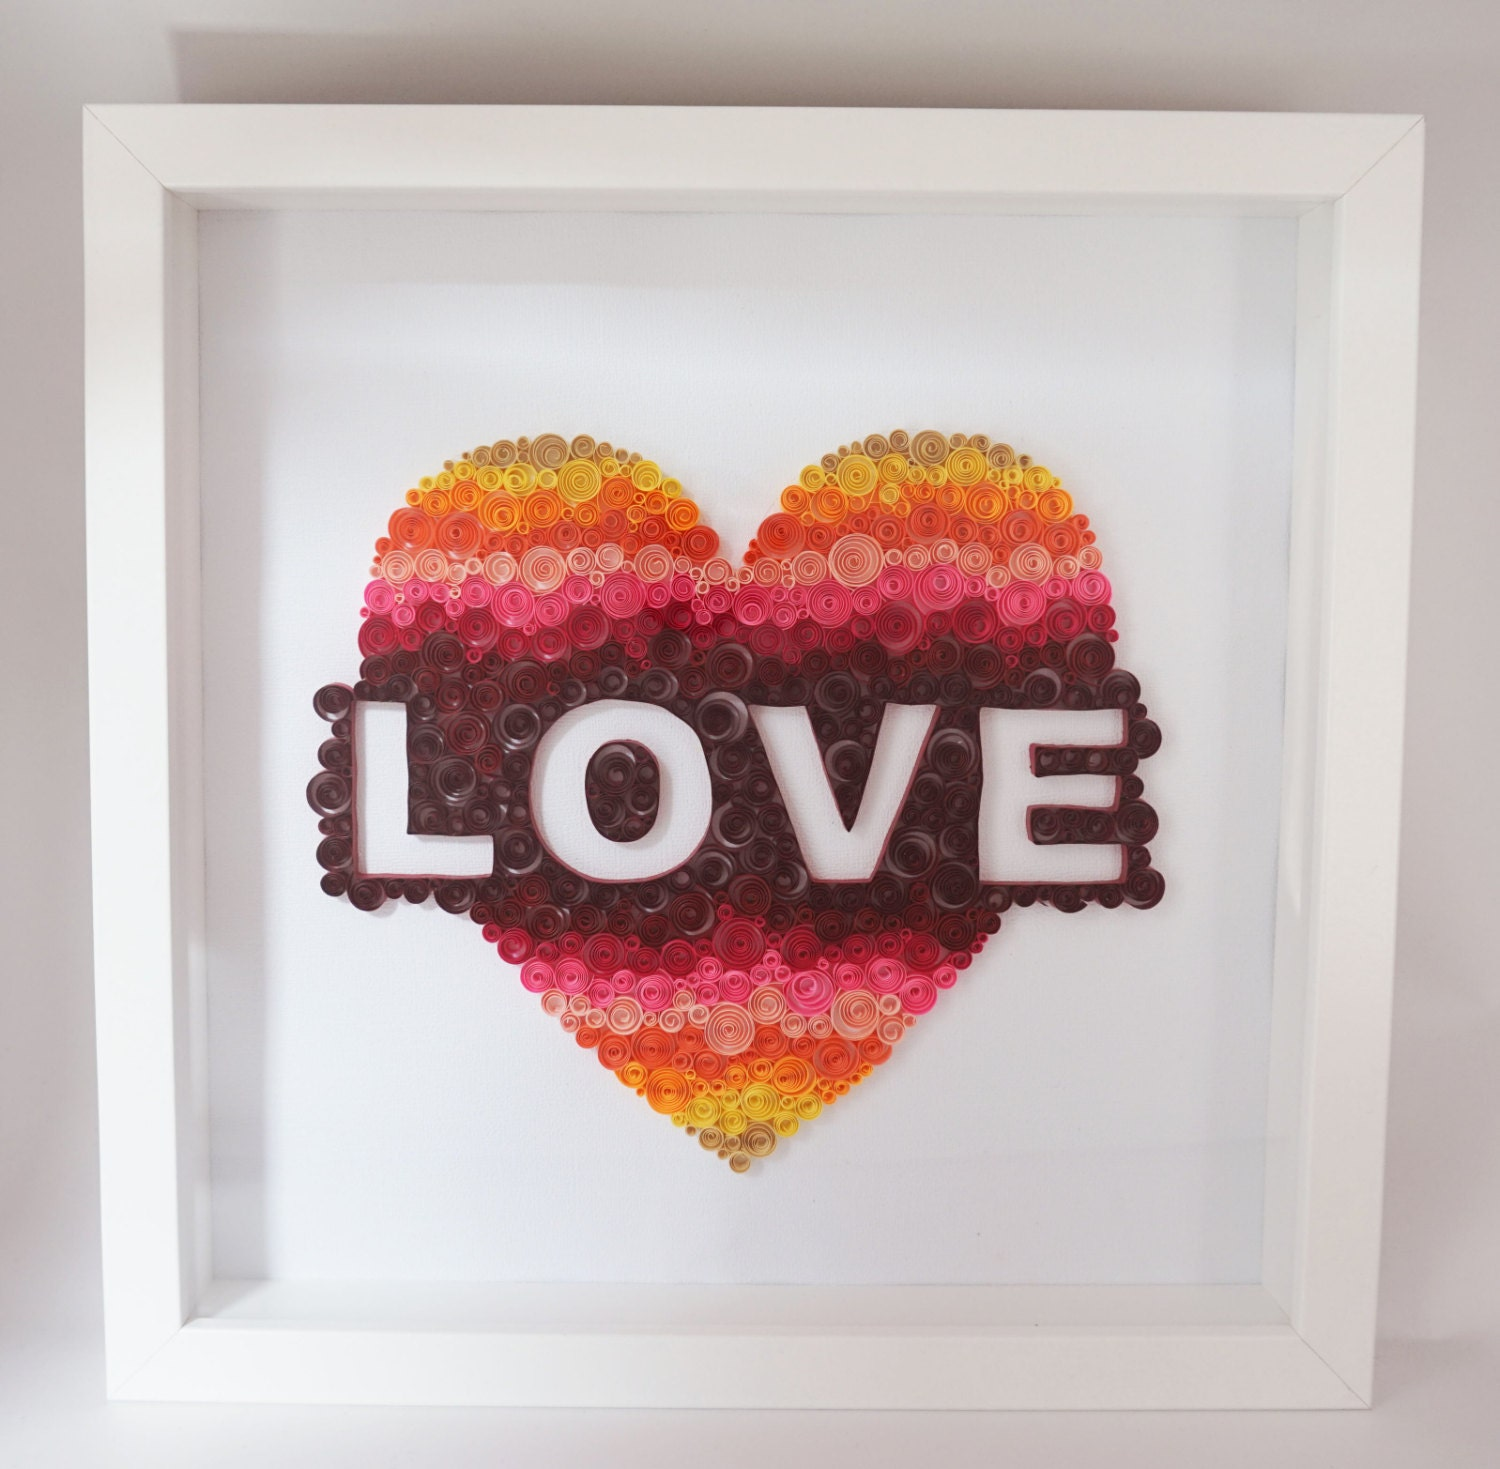 Handmade paper quilling love framed in shadow box wedding zoom negle Choice Image